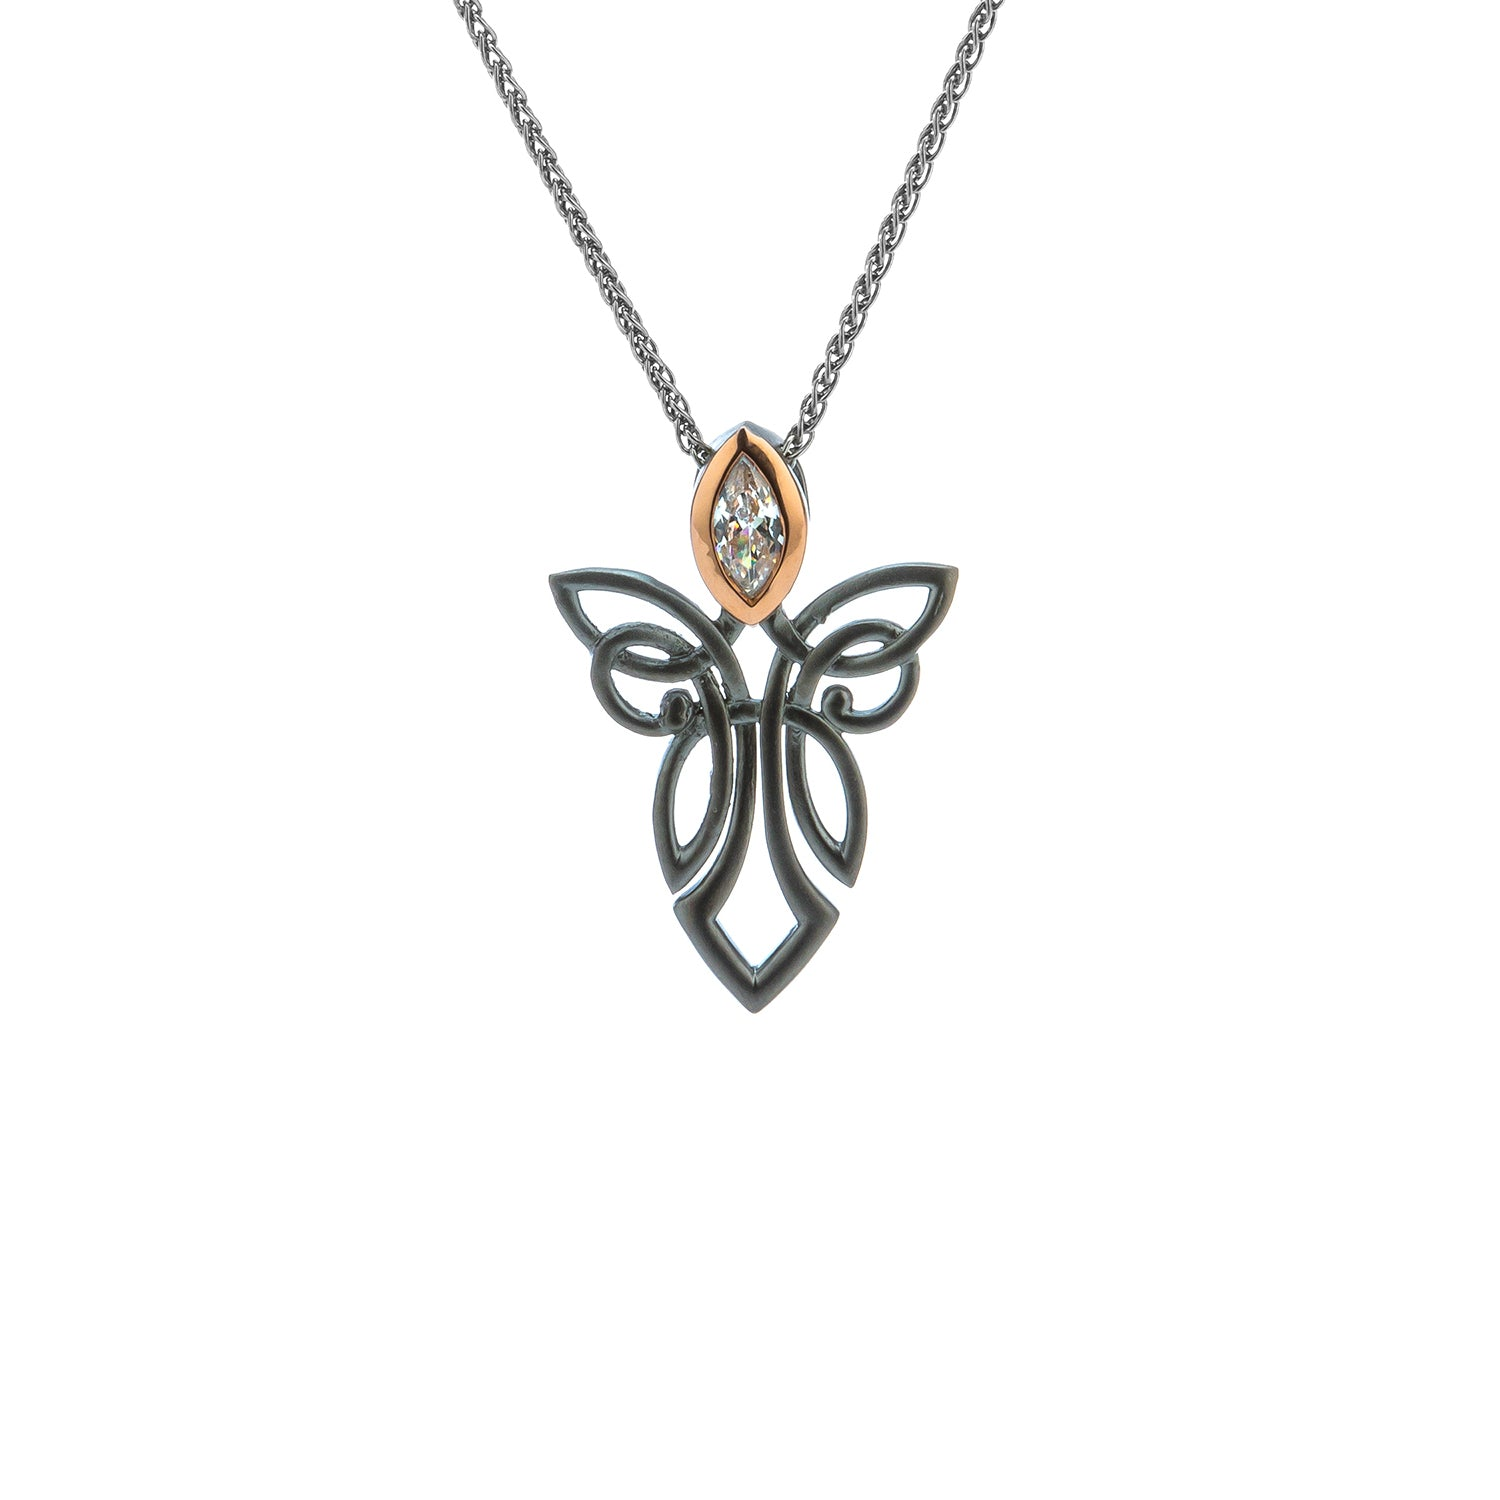 Pendant Ruthenium 10k Rose CZ Guardian Angel Pendant from welch and company jewelers near syracuse ny